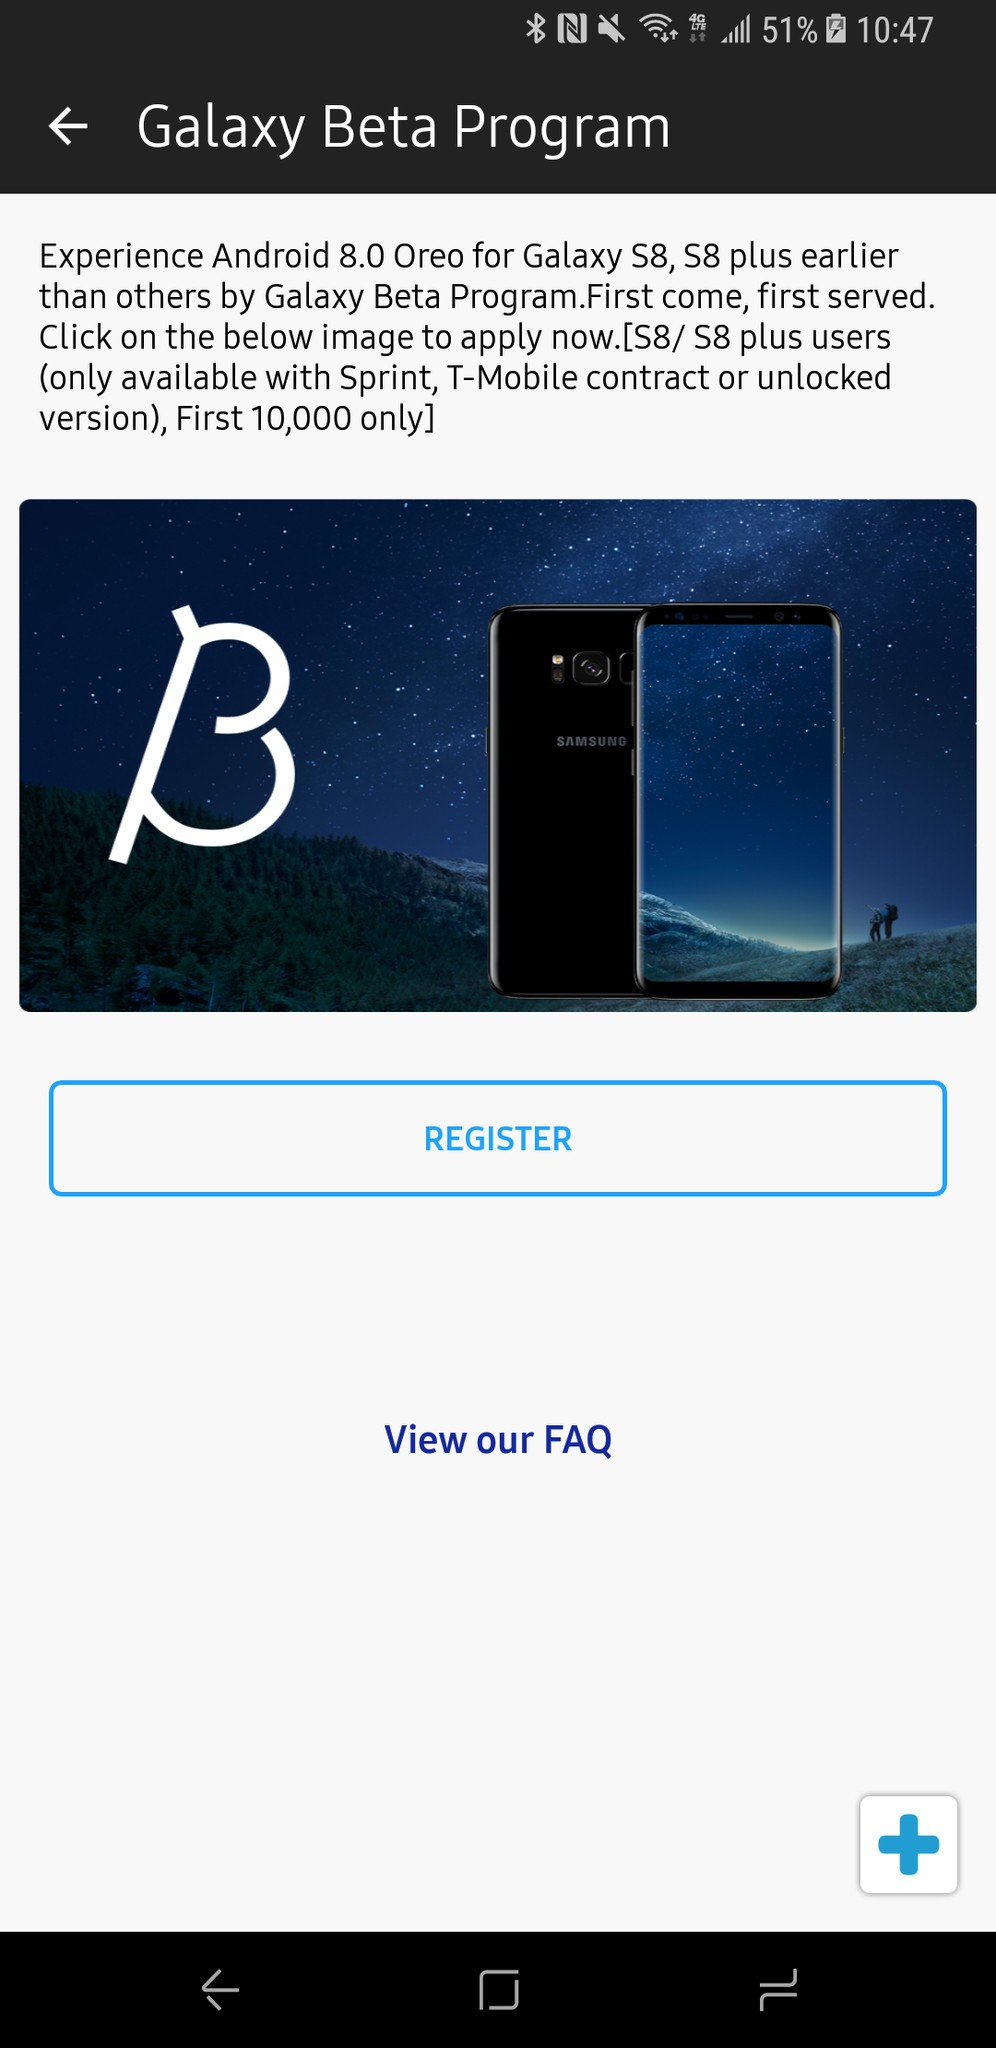 Samsung Galaxy S8 Receives BETA Test Invitation for Android 8 0